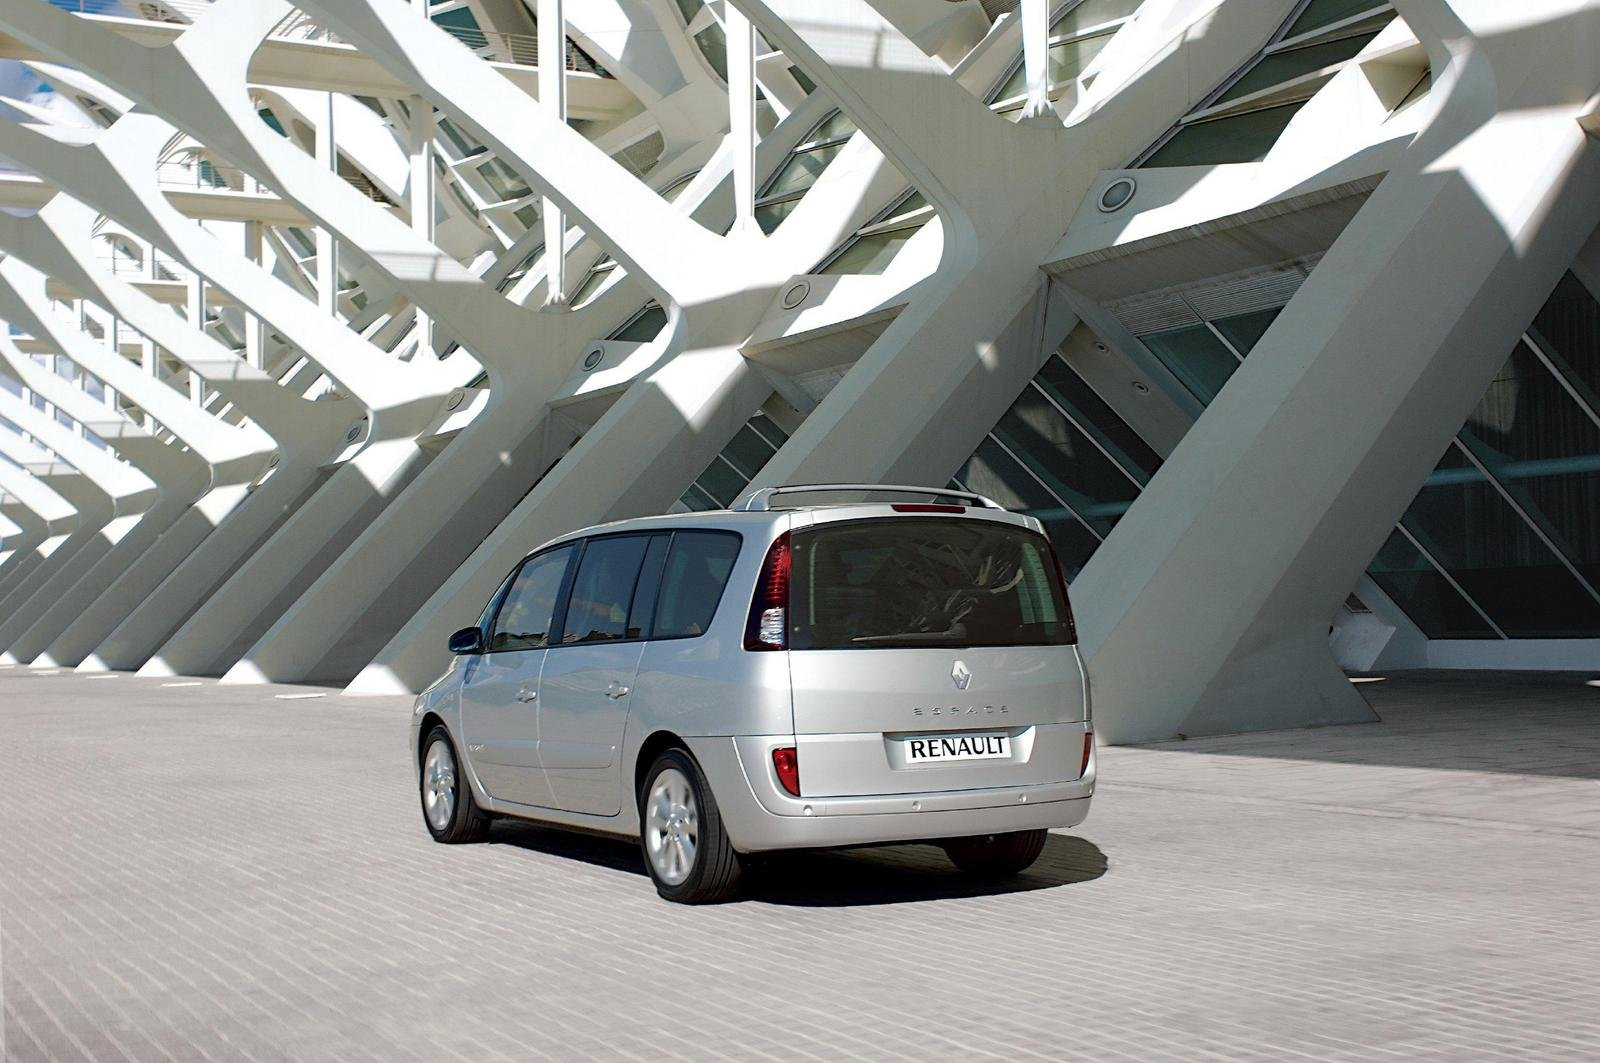 2006 renault espace iv picture 47391 car review top speed. Black Bedroom Furniture Sets. Home Design Ideas